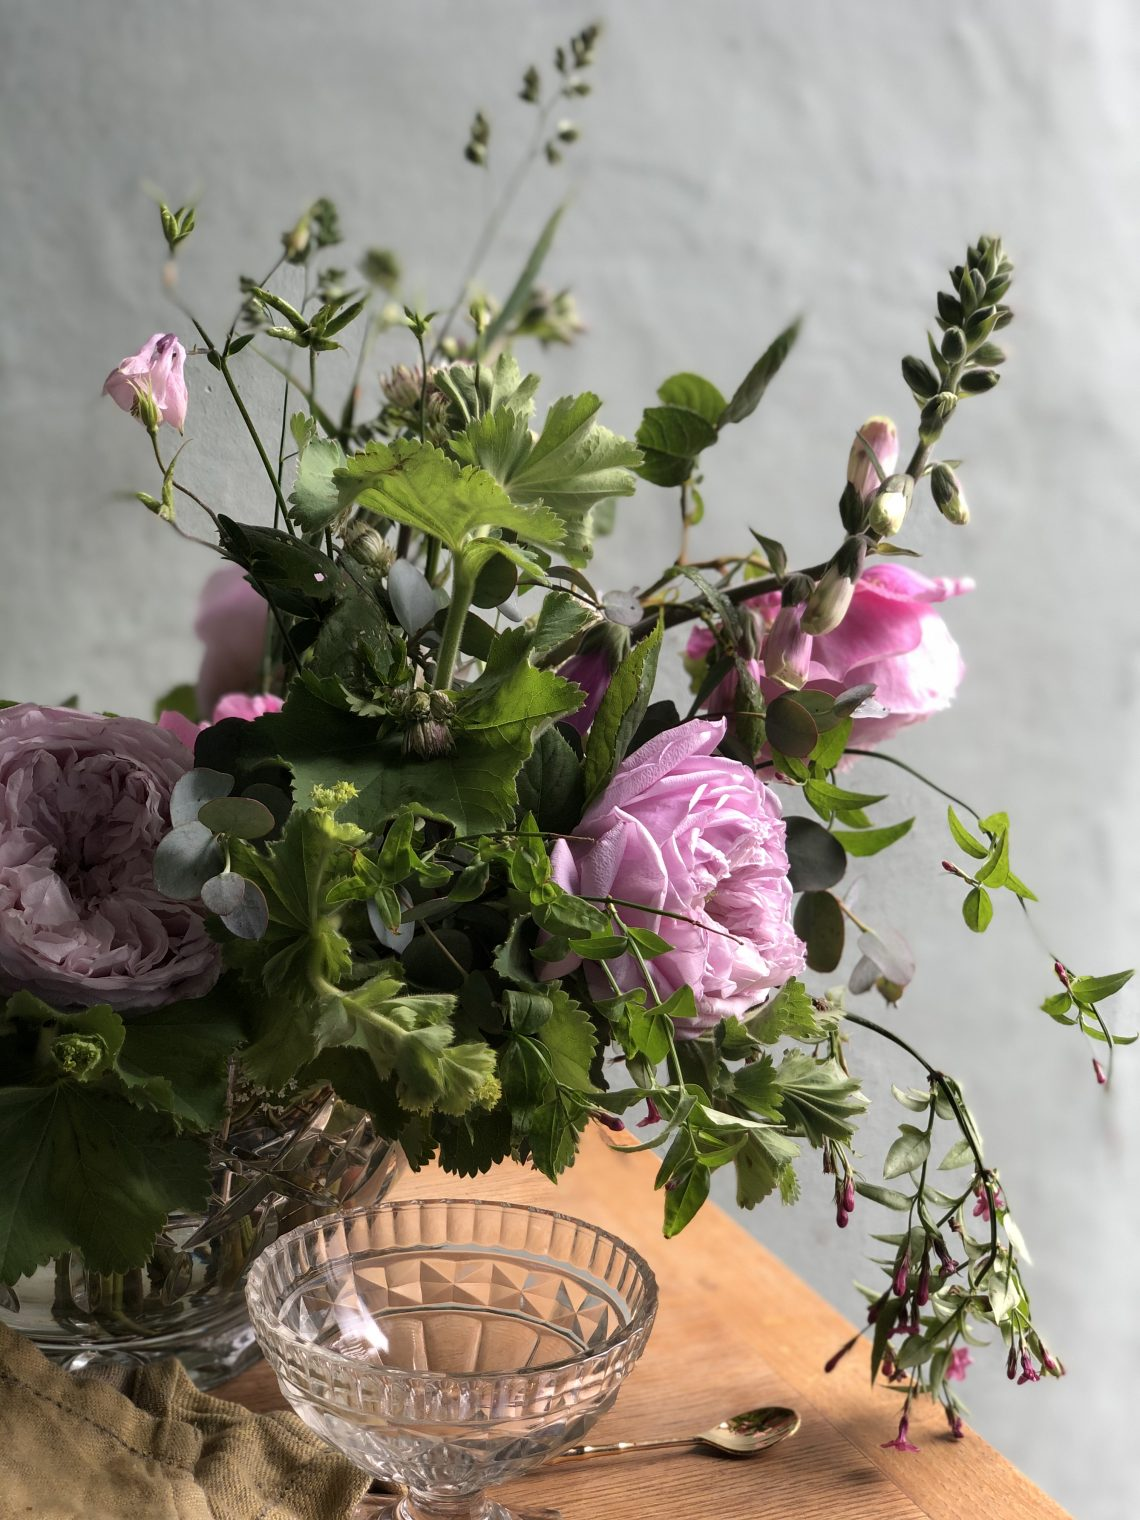 What's in bloom in June? June wedding flowers, UK